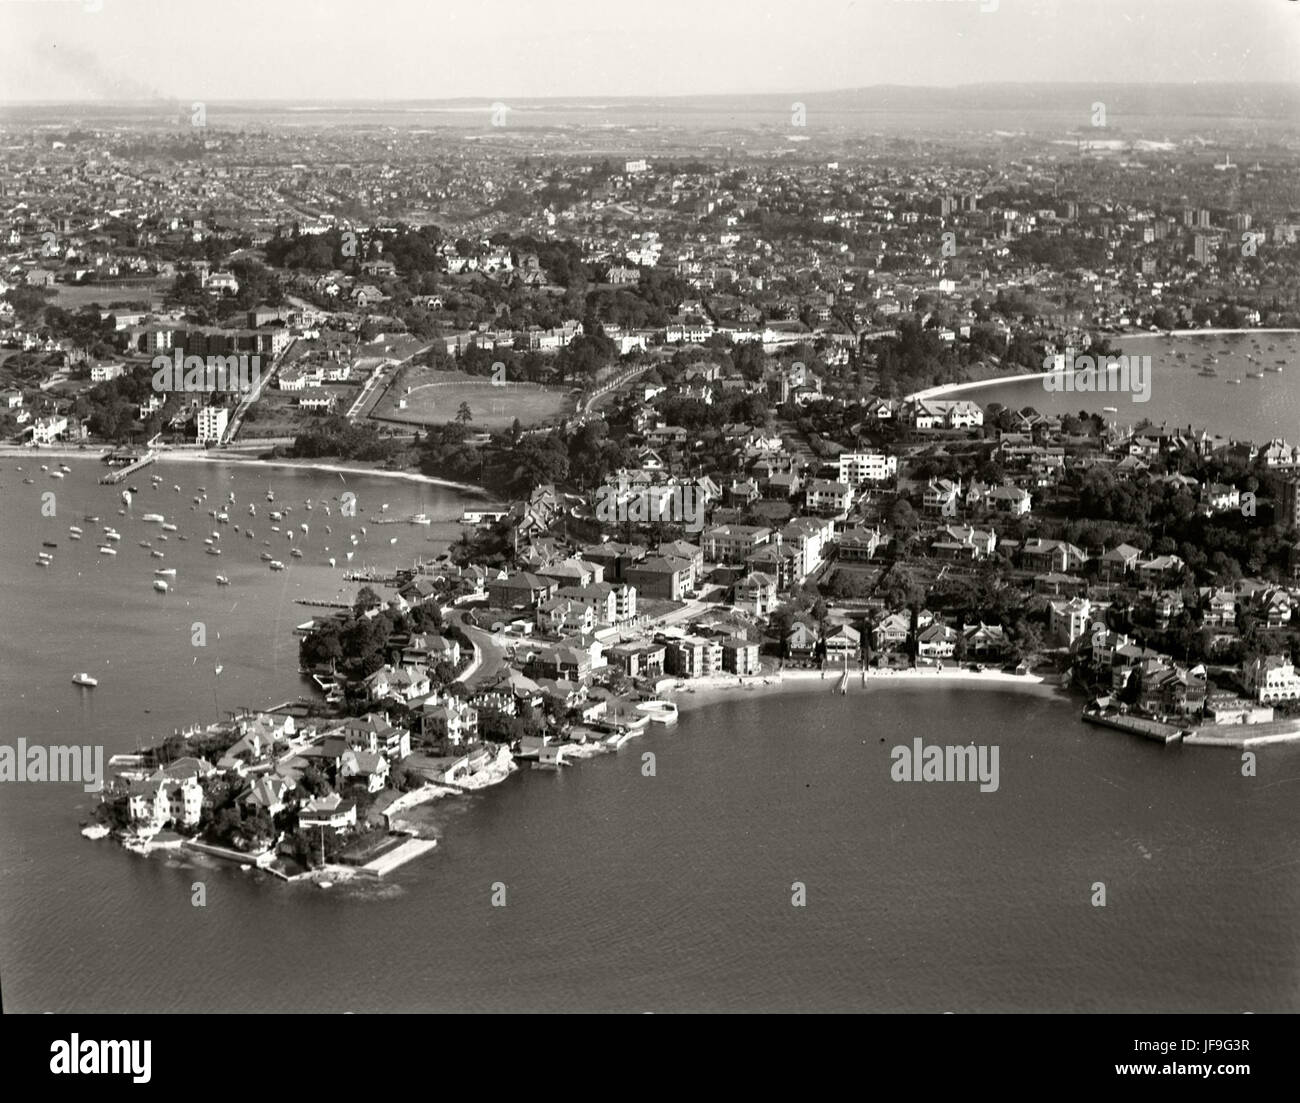 Point Piper & Rose Bay - 2 Aug 1937 30050489822 o - Stock Image